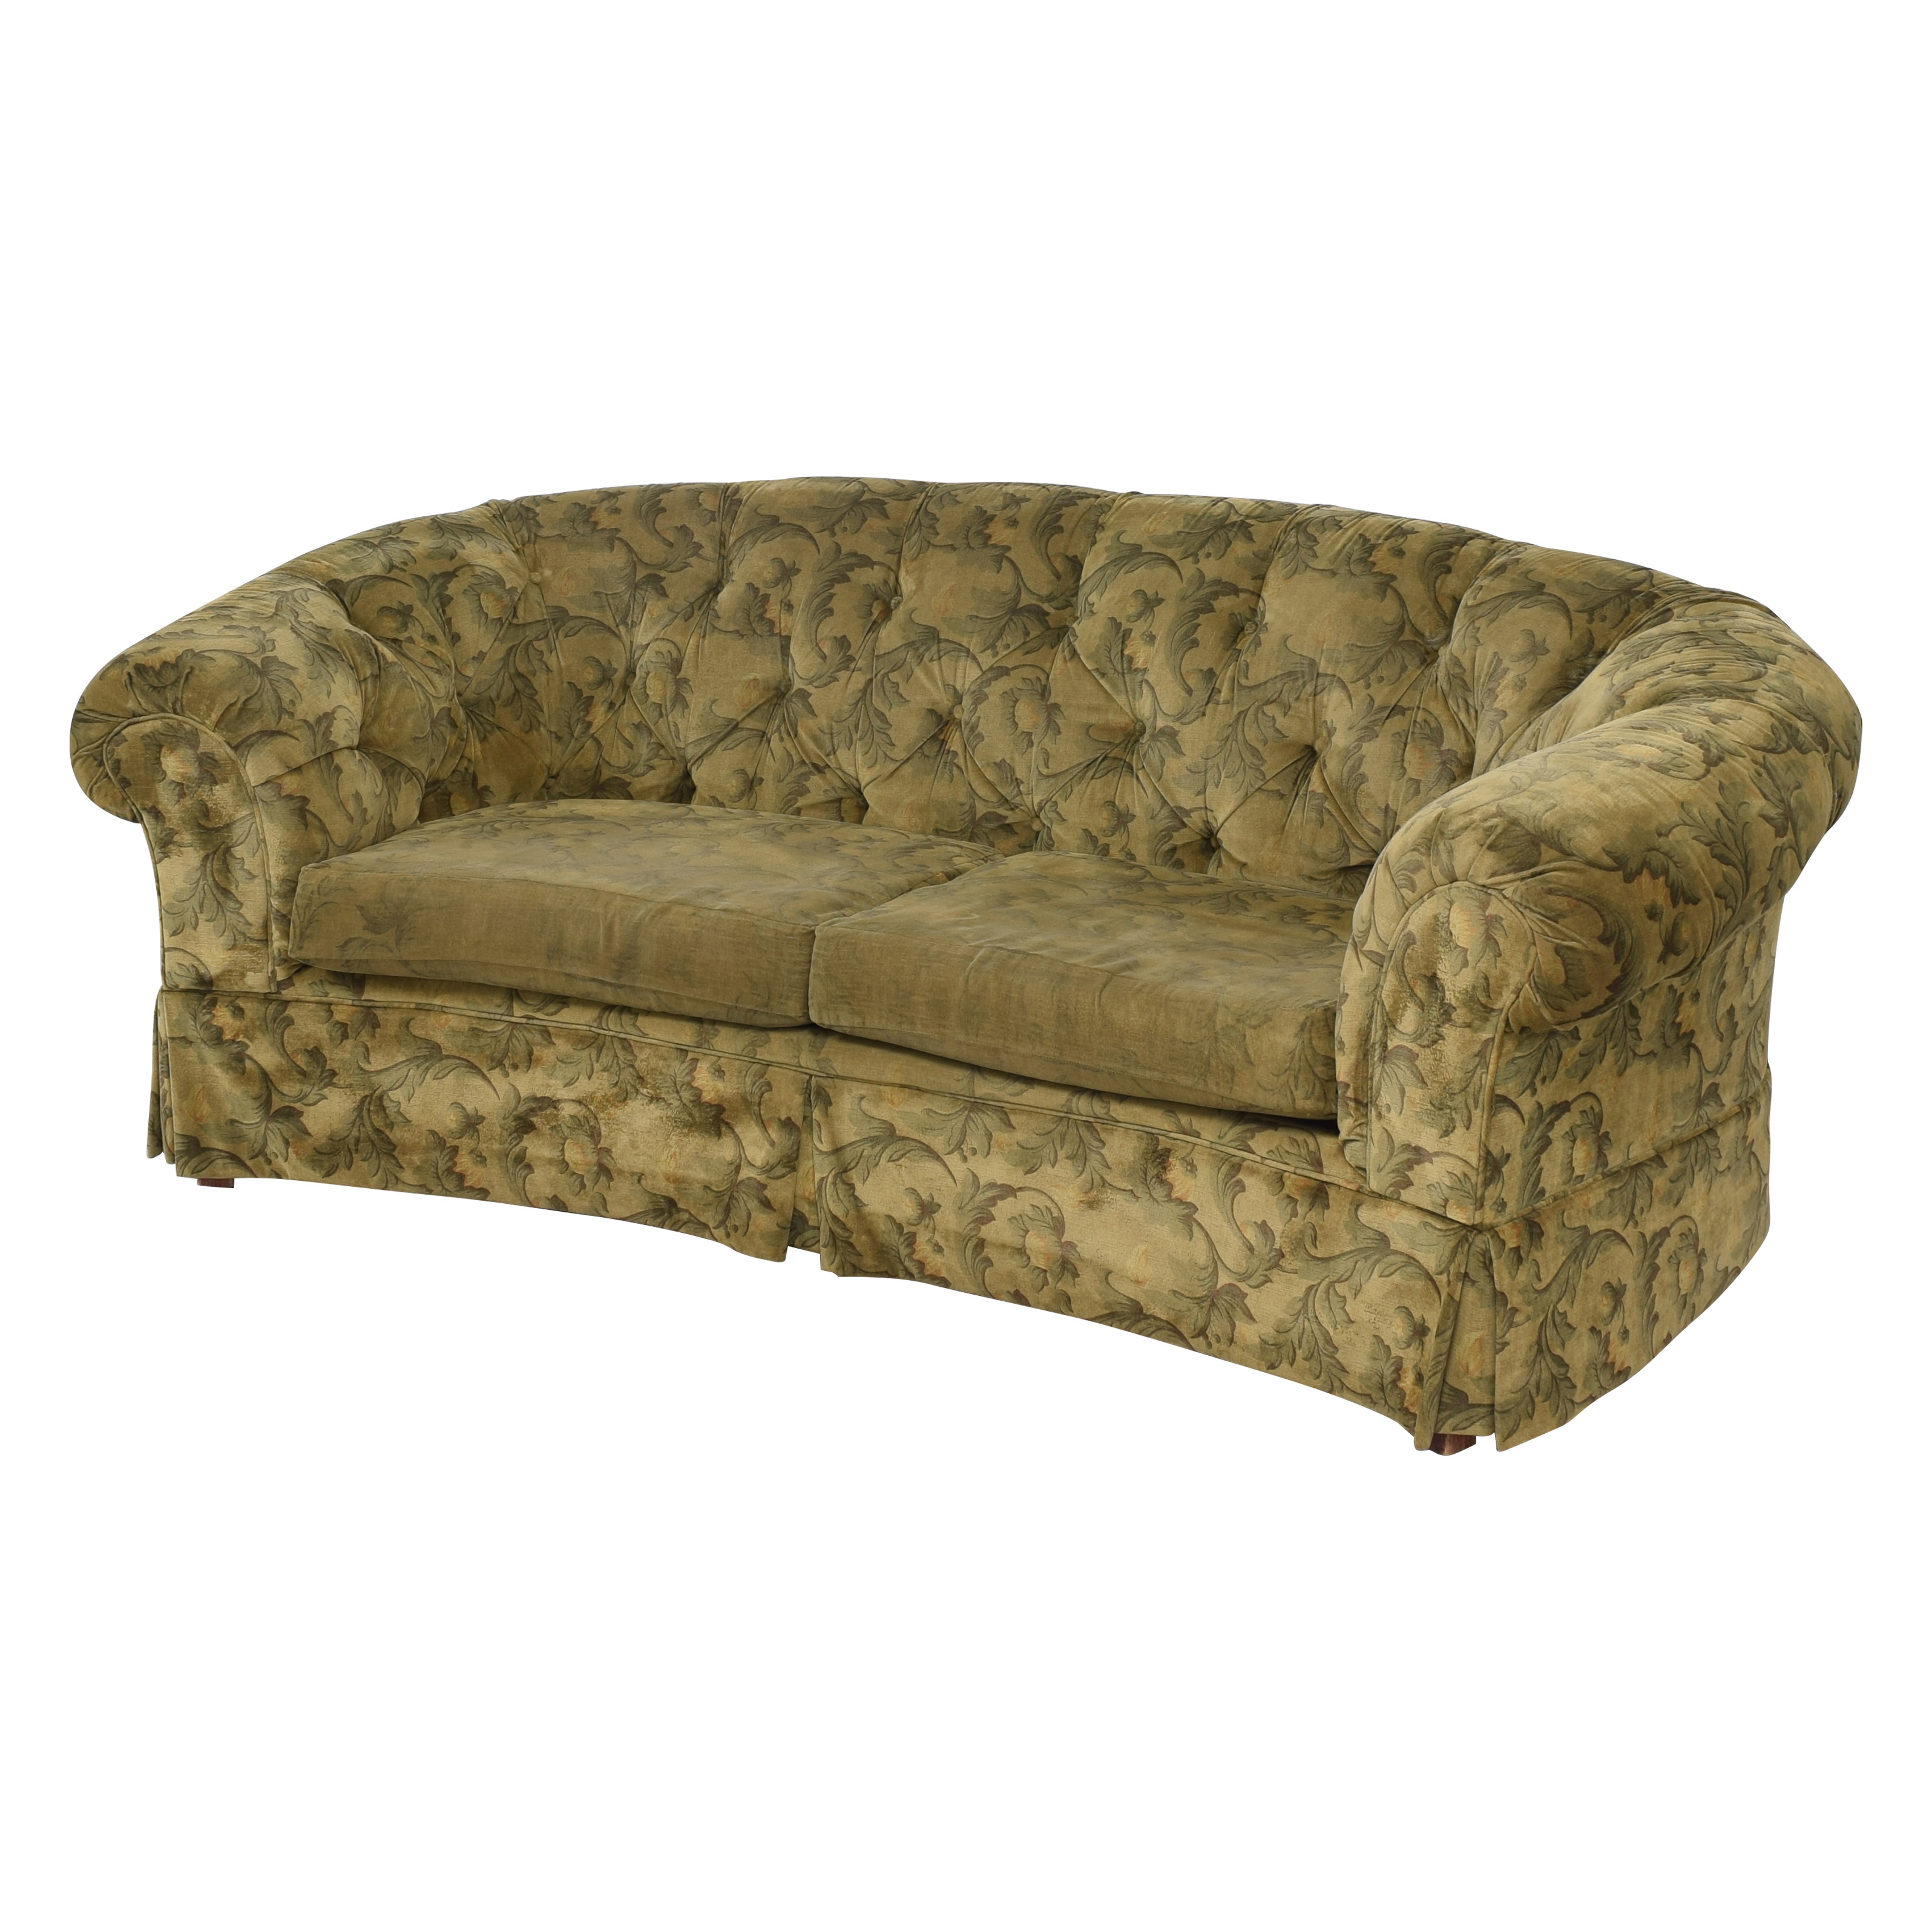 Curved Back Rolled Arm Tufted Sofa